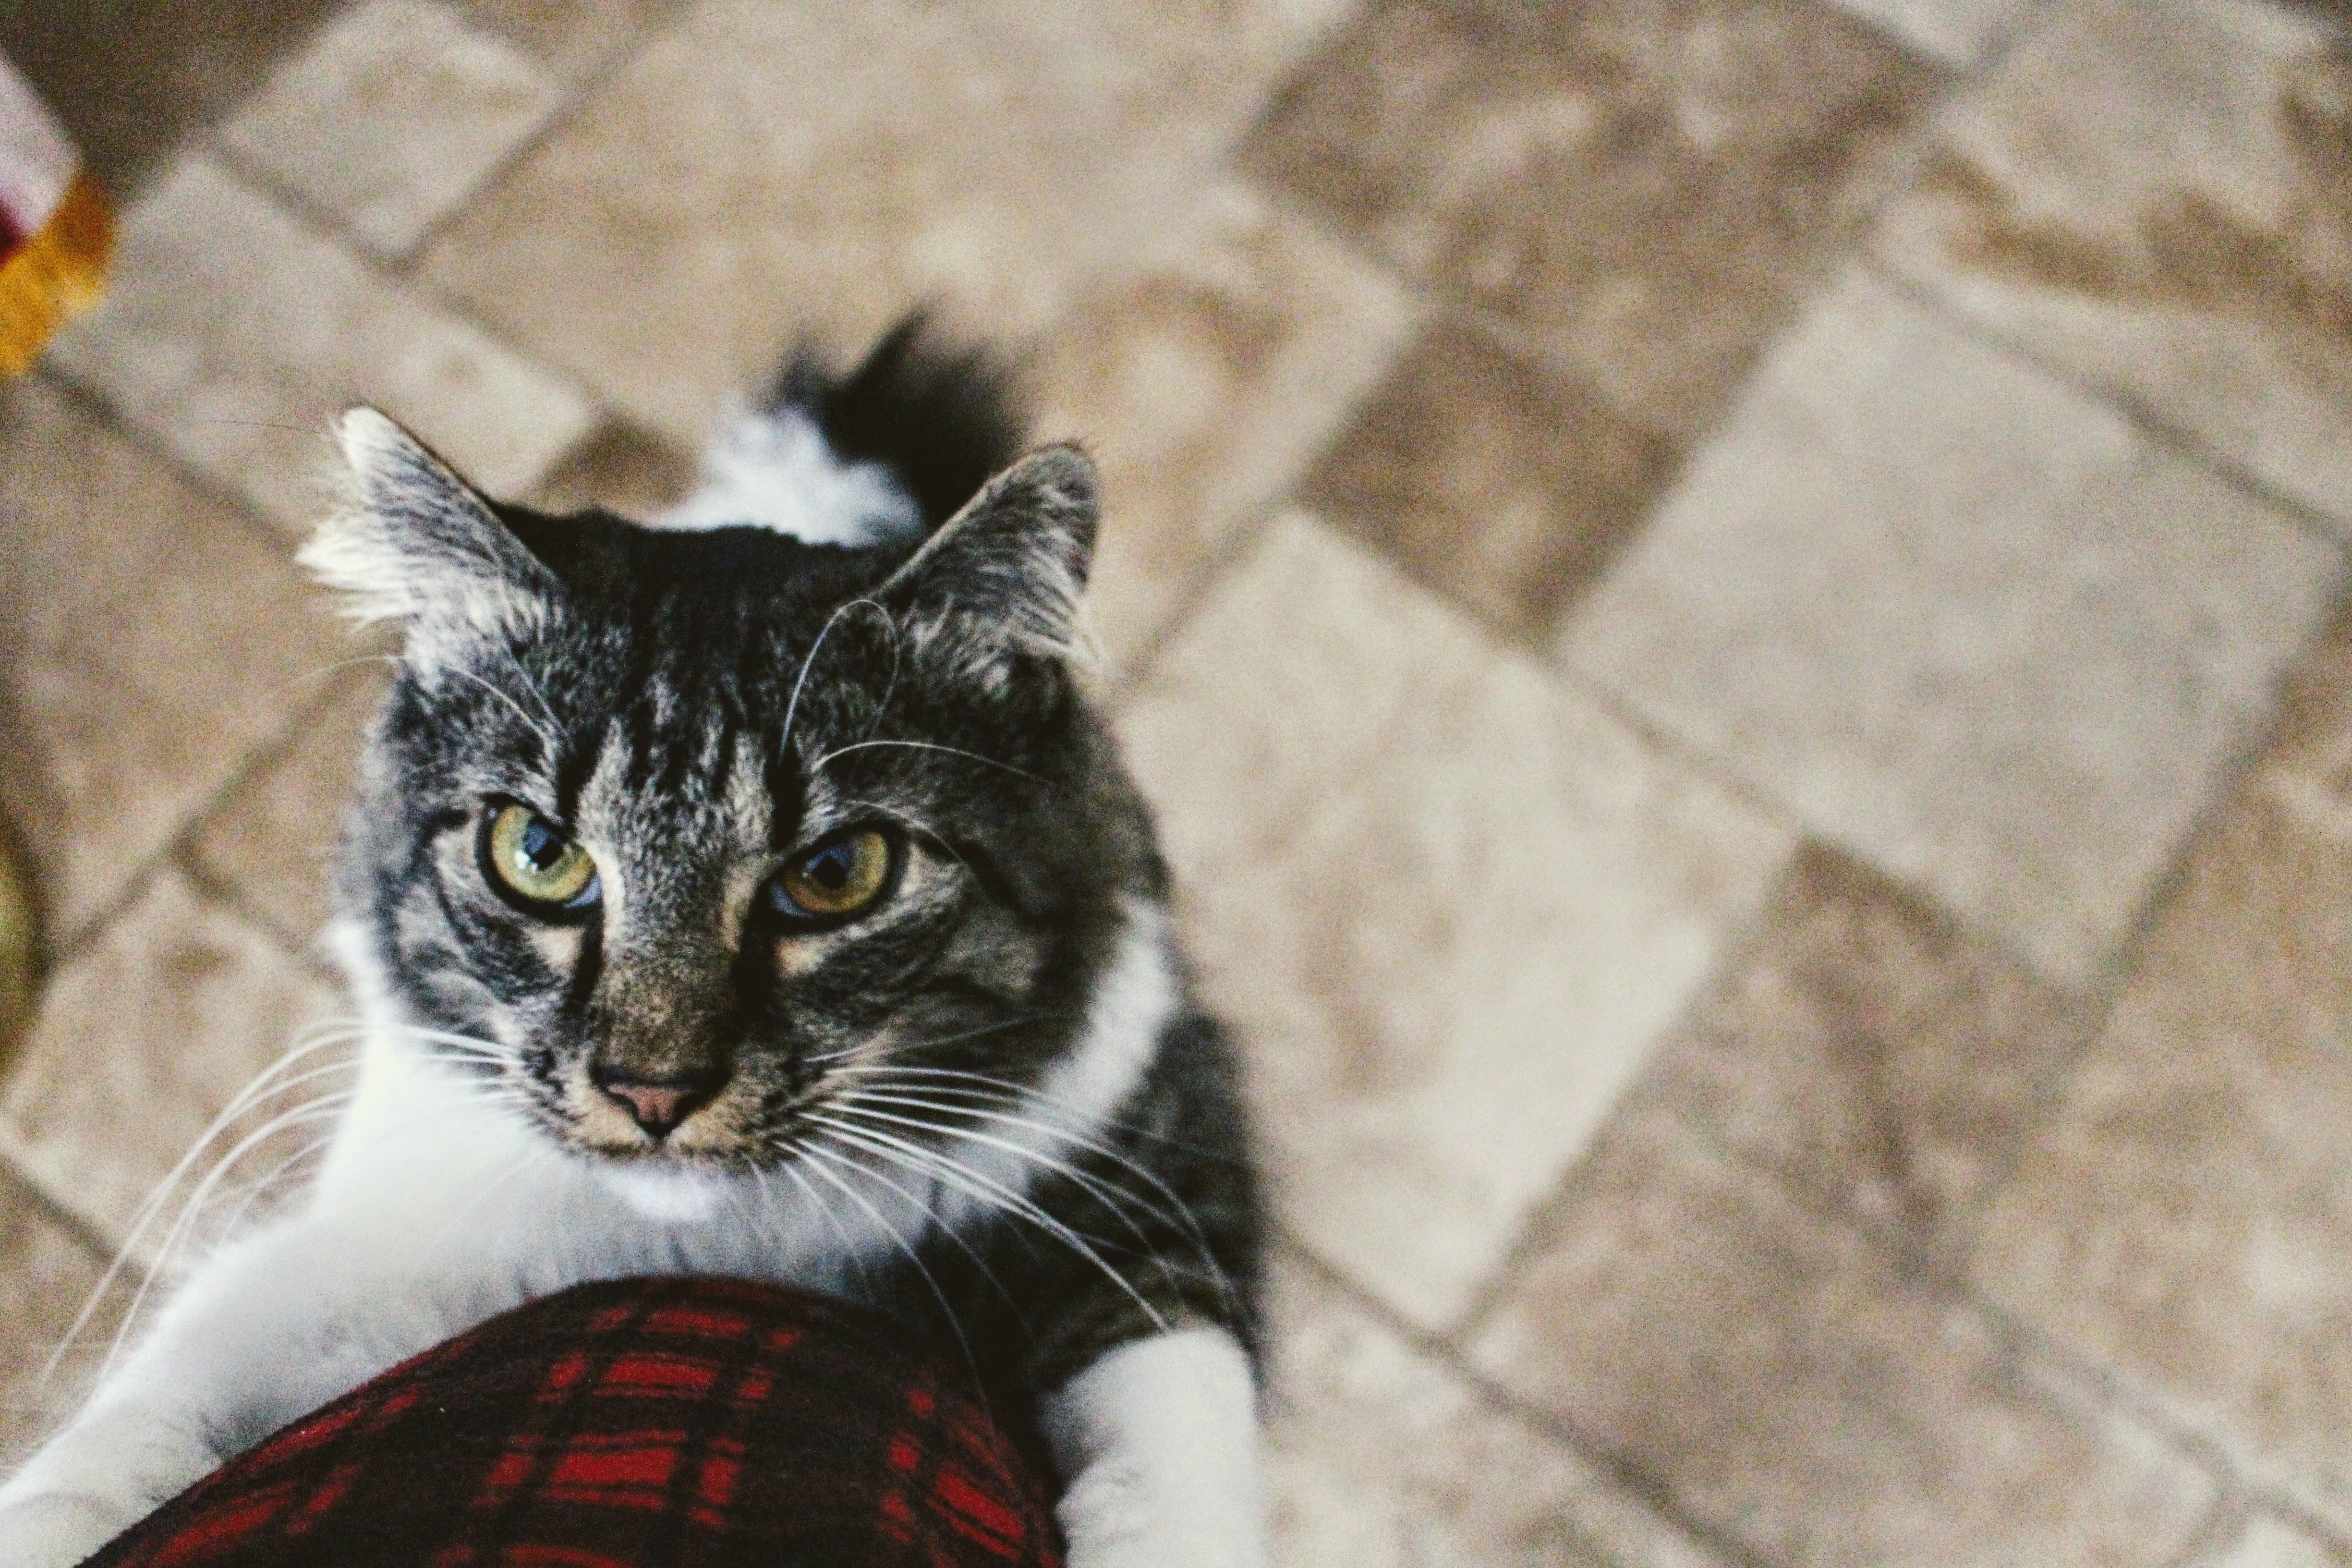 Download Wallpaper Cute Cat Silver Tabby Cat 183 Free Stock Photo